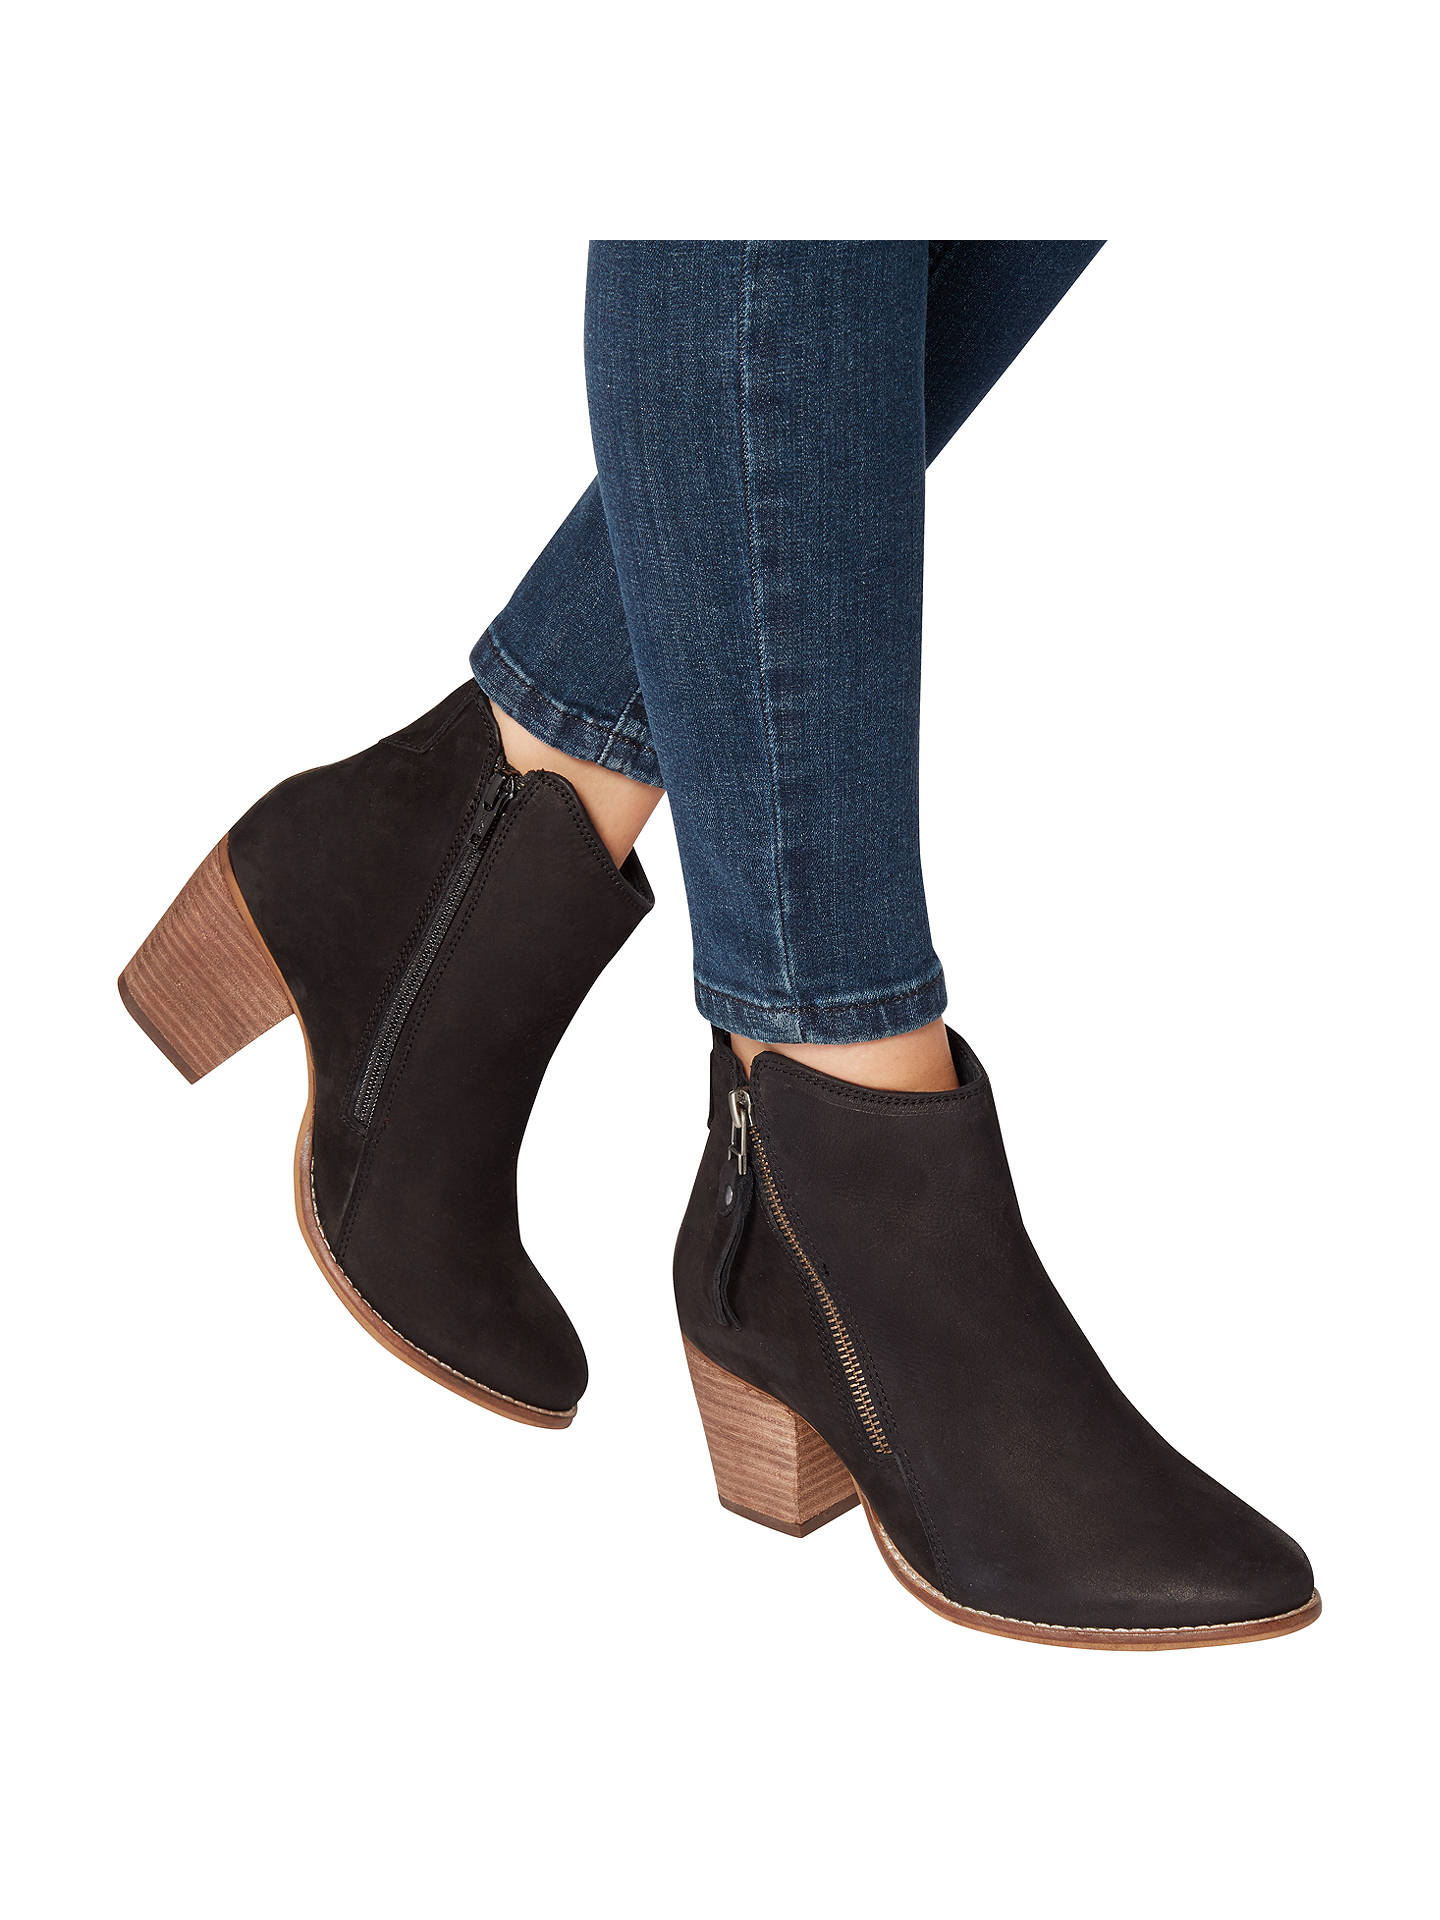 1419949f310 Dune Pontoon Wide Fit Stacked Heel Ankle Boots at John Lewis   Partners